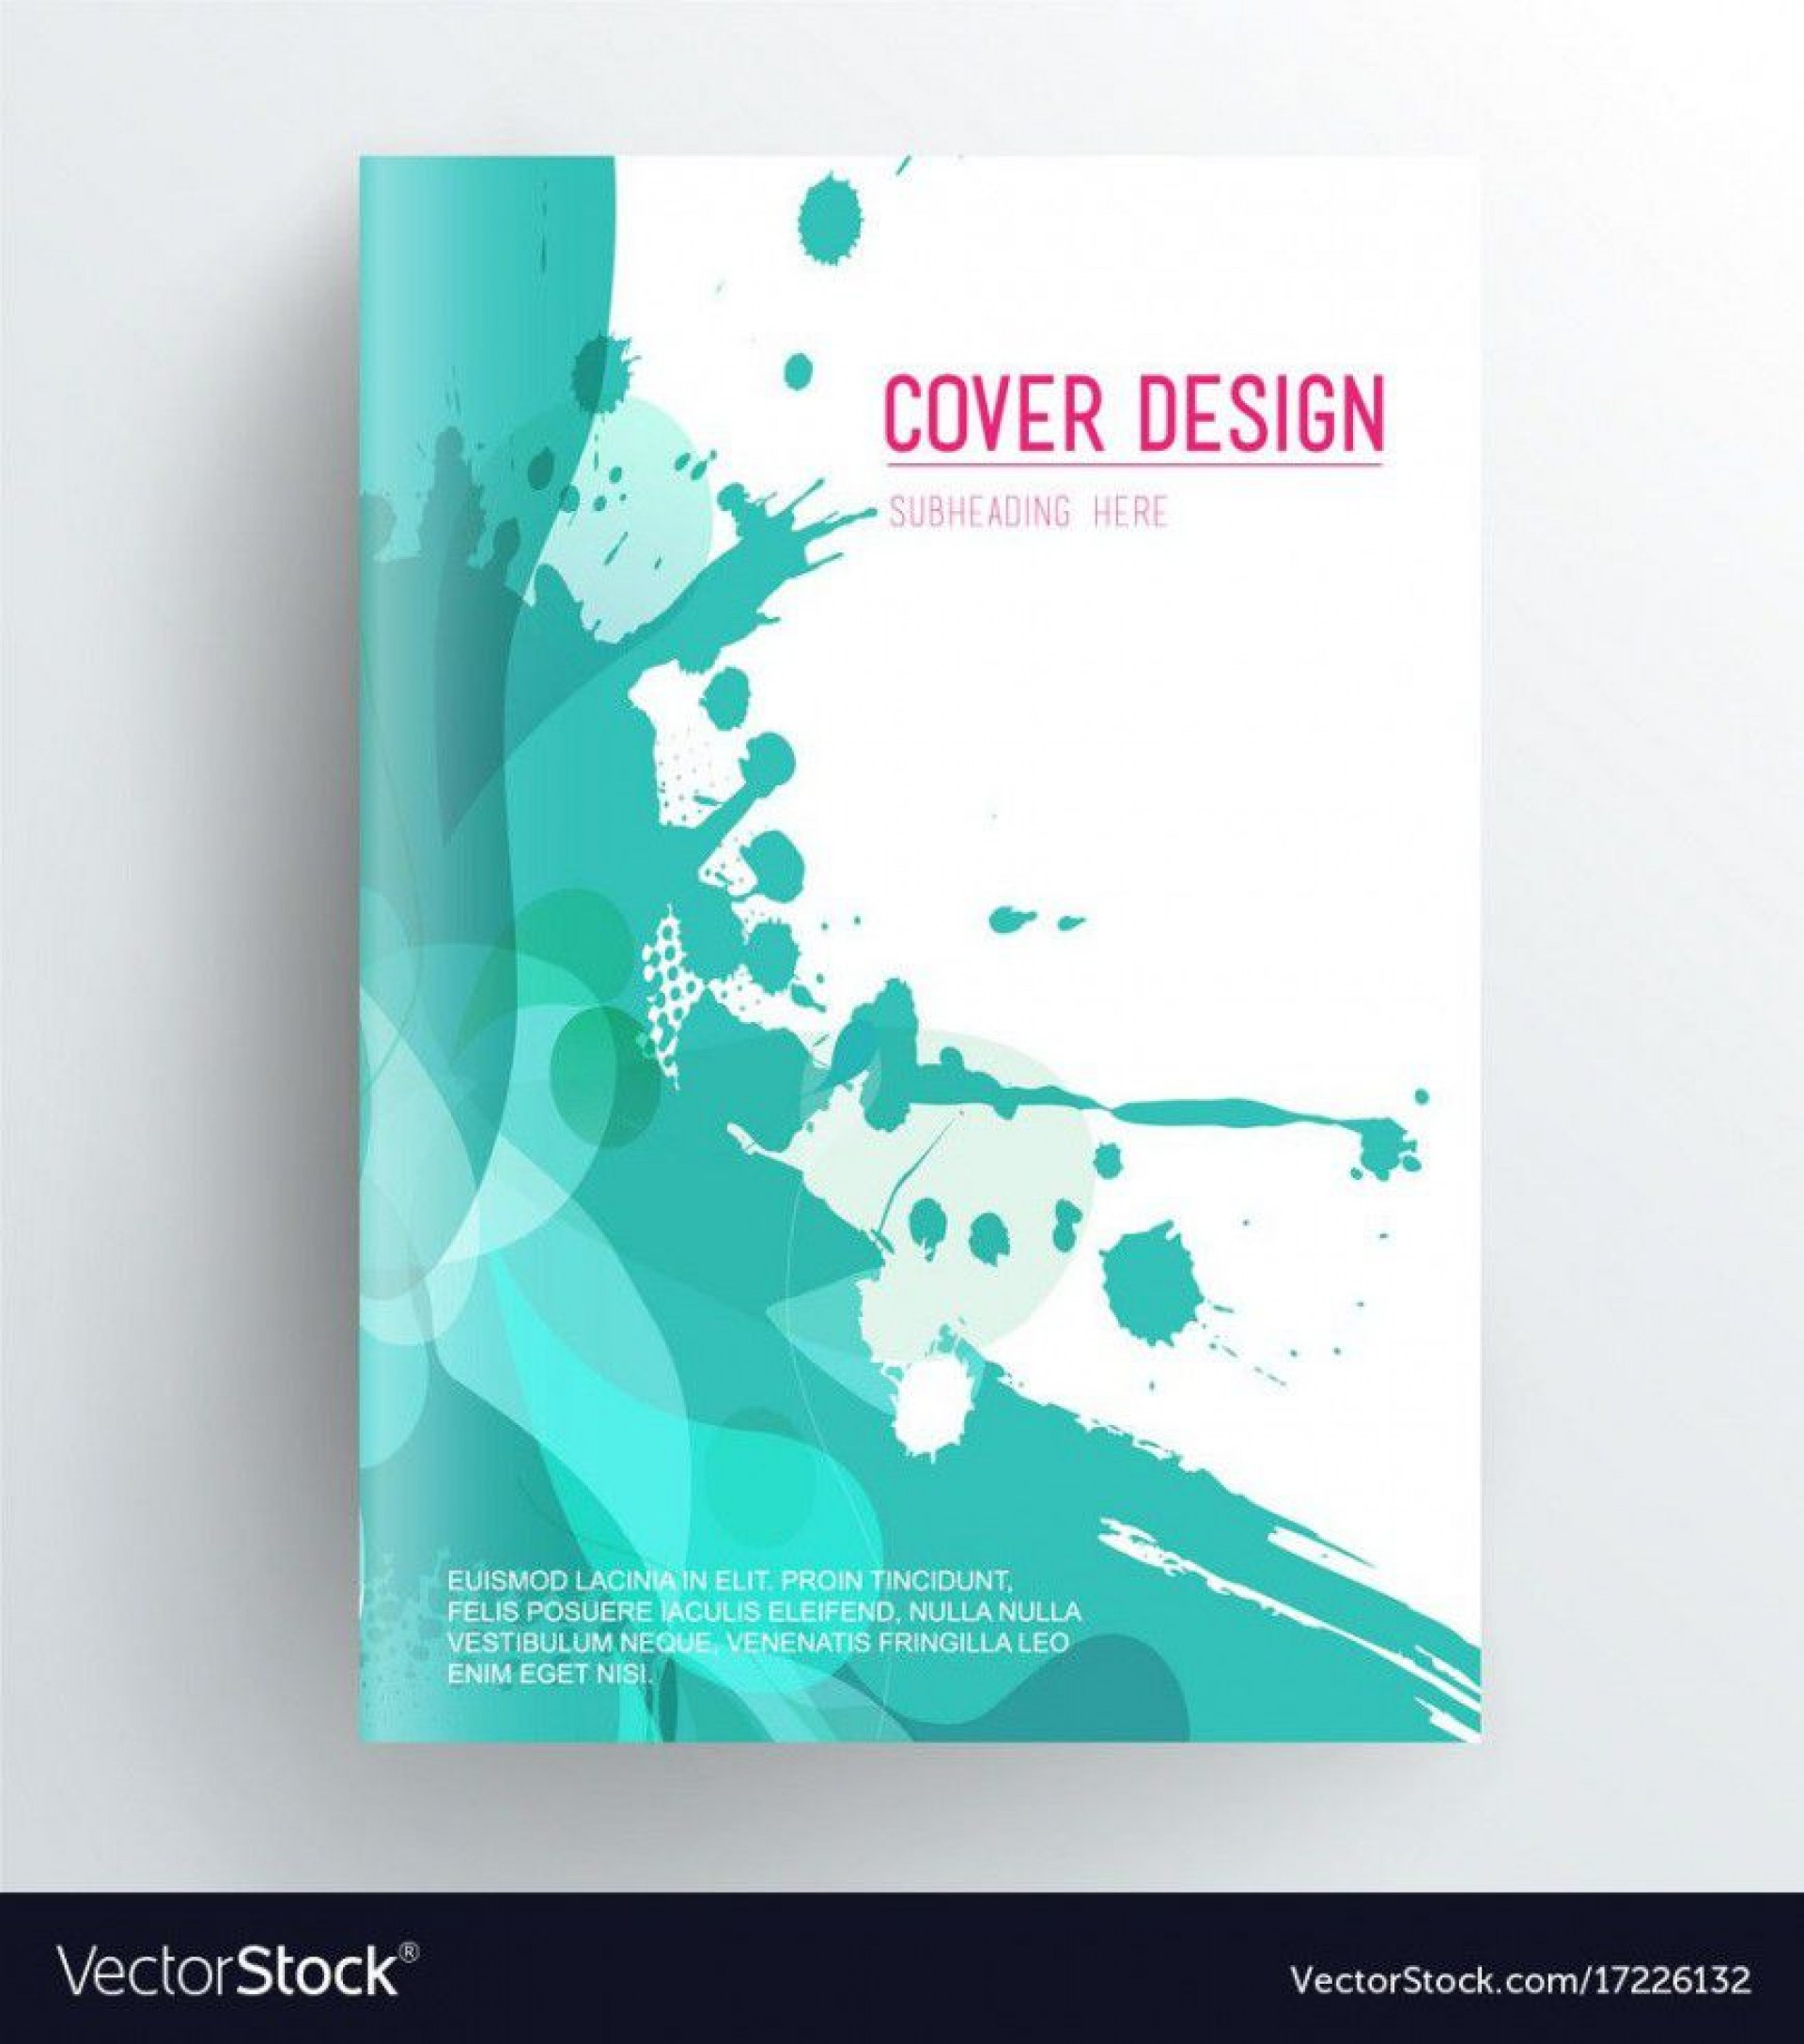 000 Excellent Free Download Book Cover Design Template Psd Sample 1920